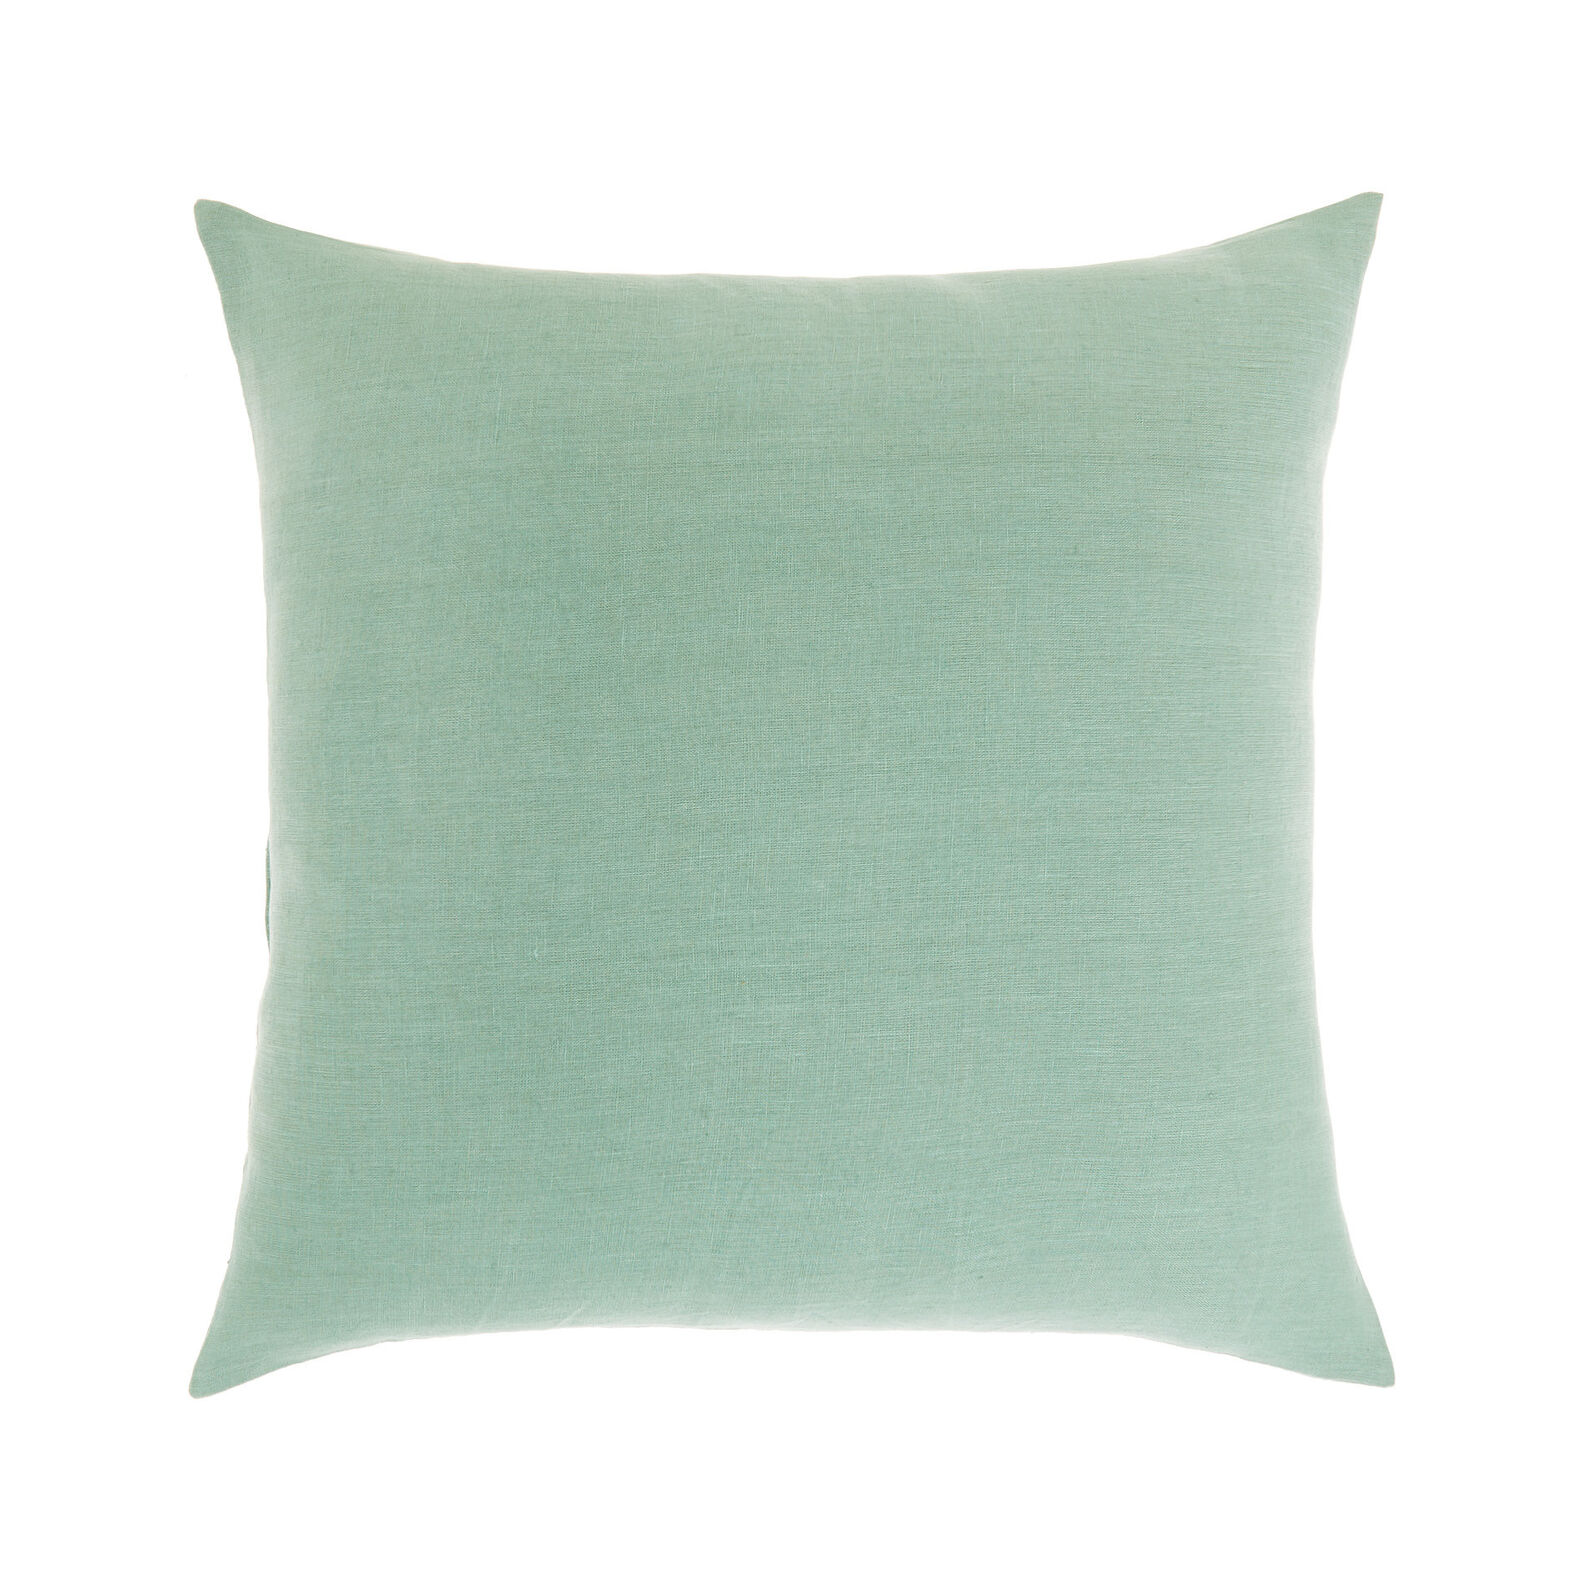 Natural colour 100% linen cushion cover 45x45cm